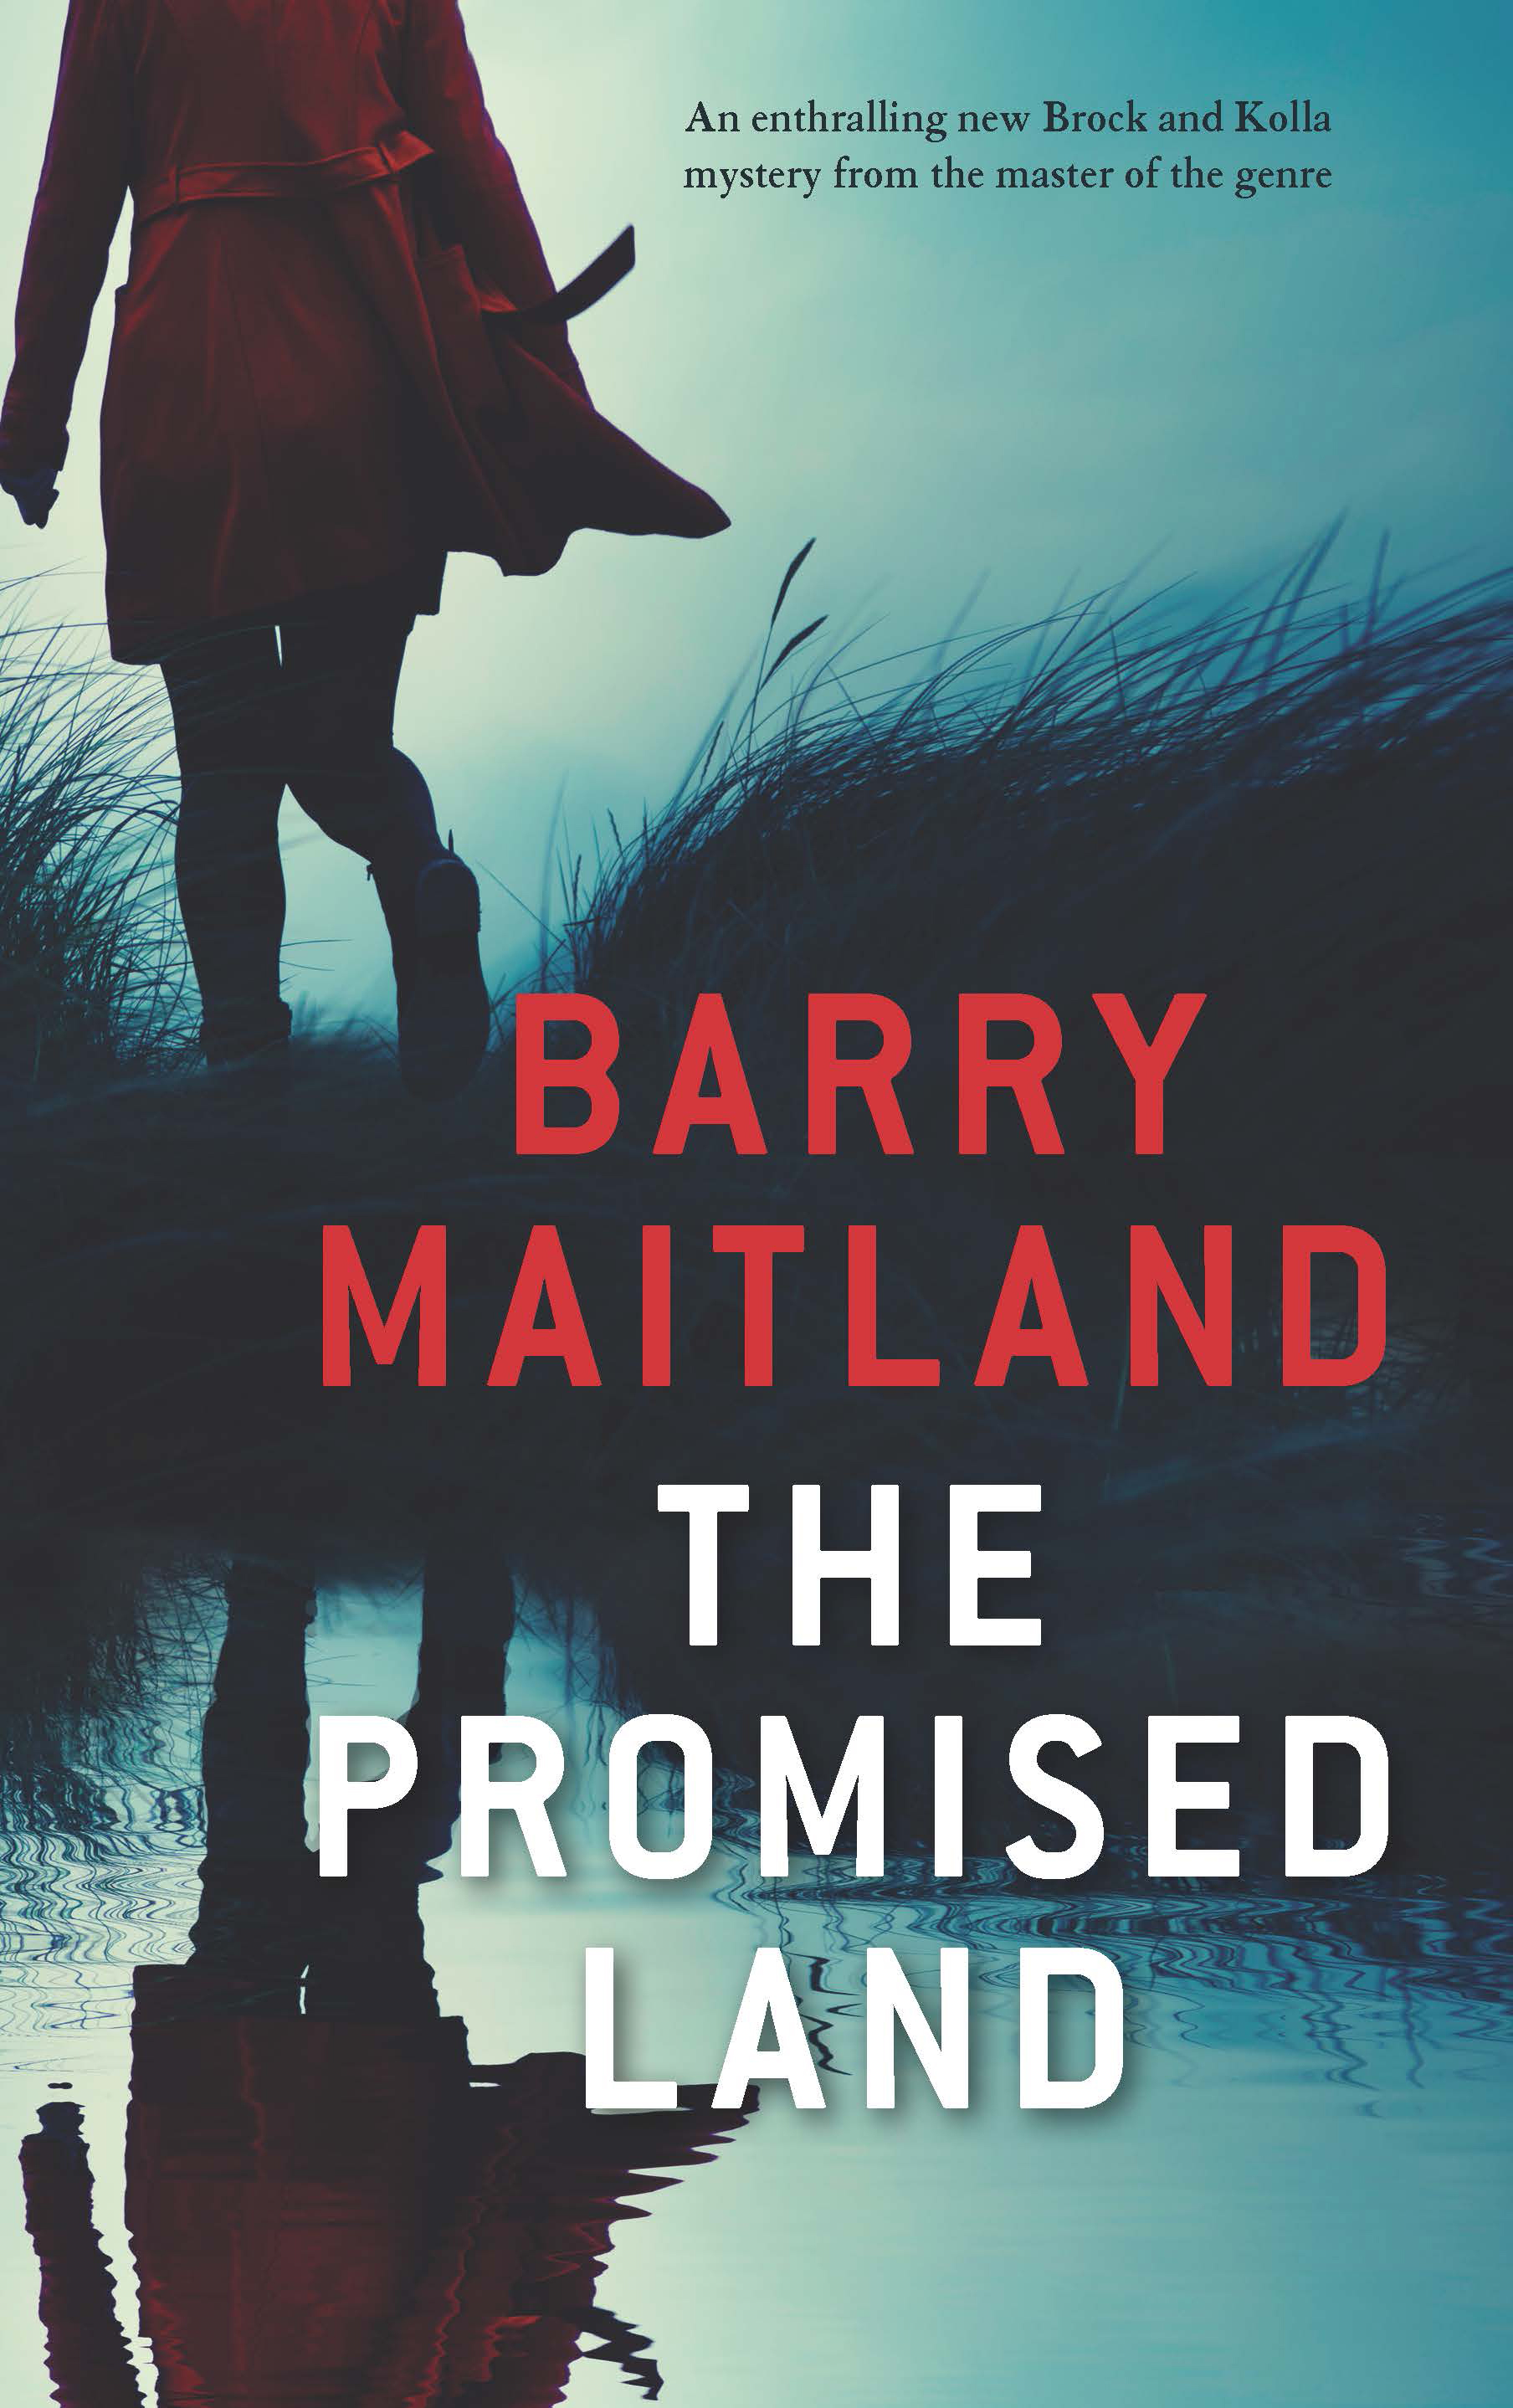 THE PROMISED LAND by Barry Maitland (Allen & Unwin, $A29.99)